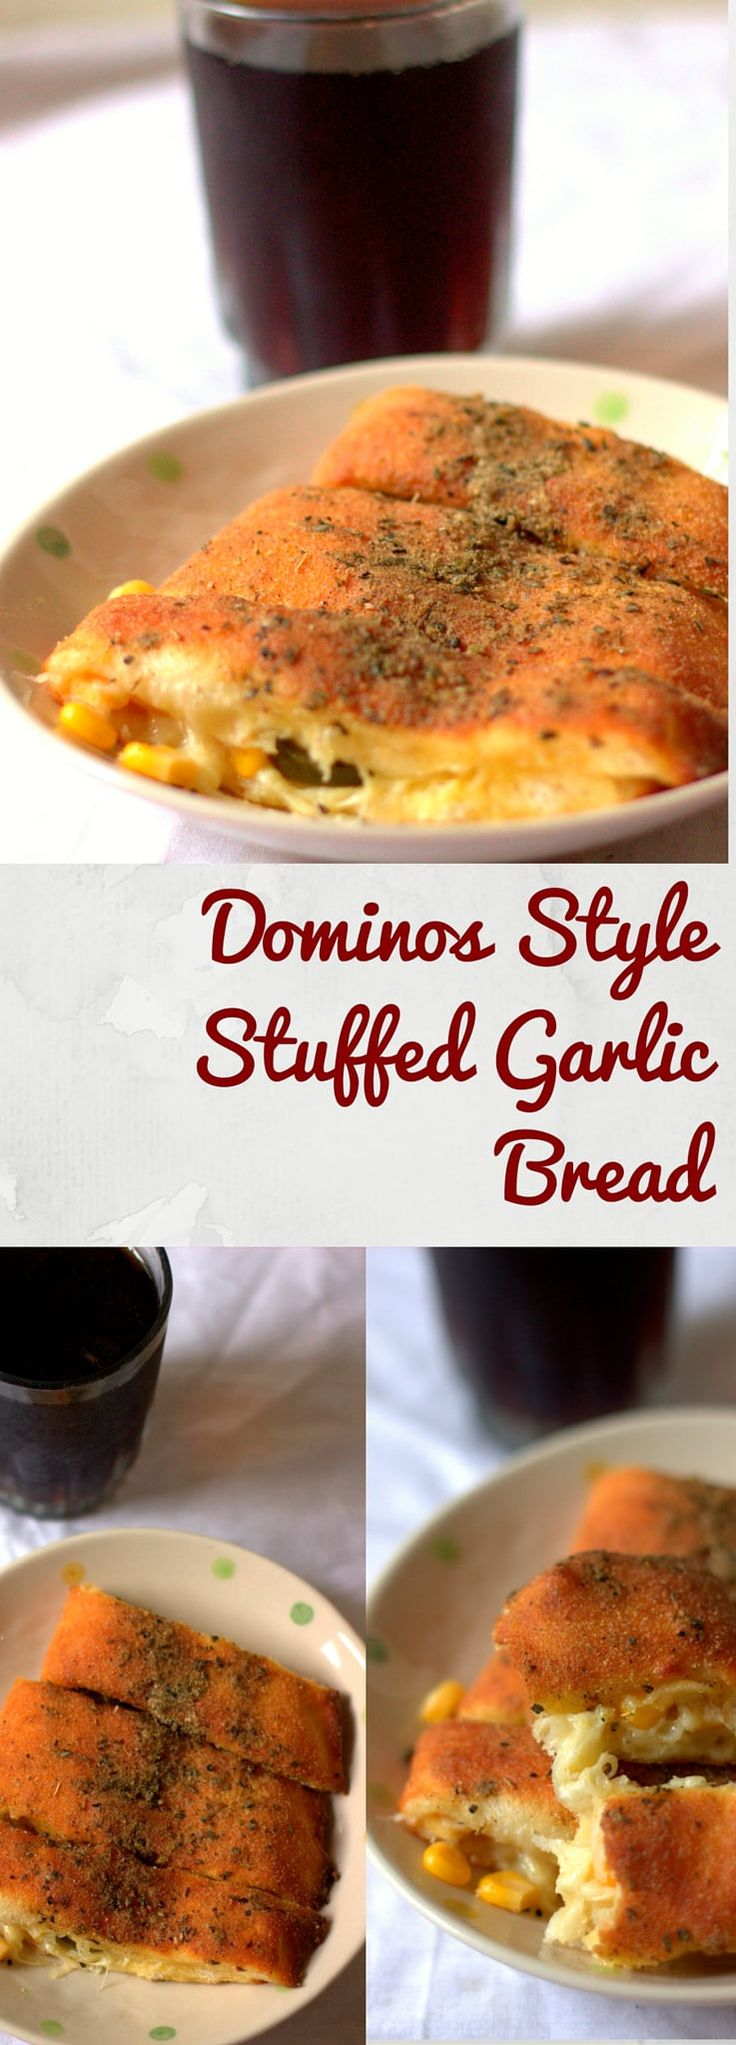 Easy Cheese Garlic bread stuffed with corn and jalapeno made in the Dominos style. You can use cheddar or mazzarella cheese and this is a great starter.